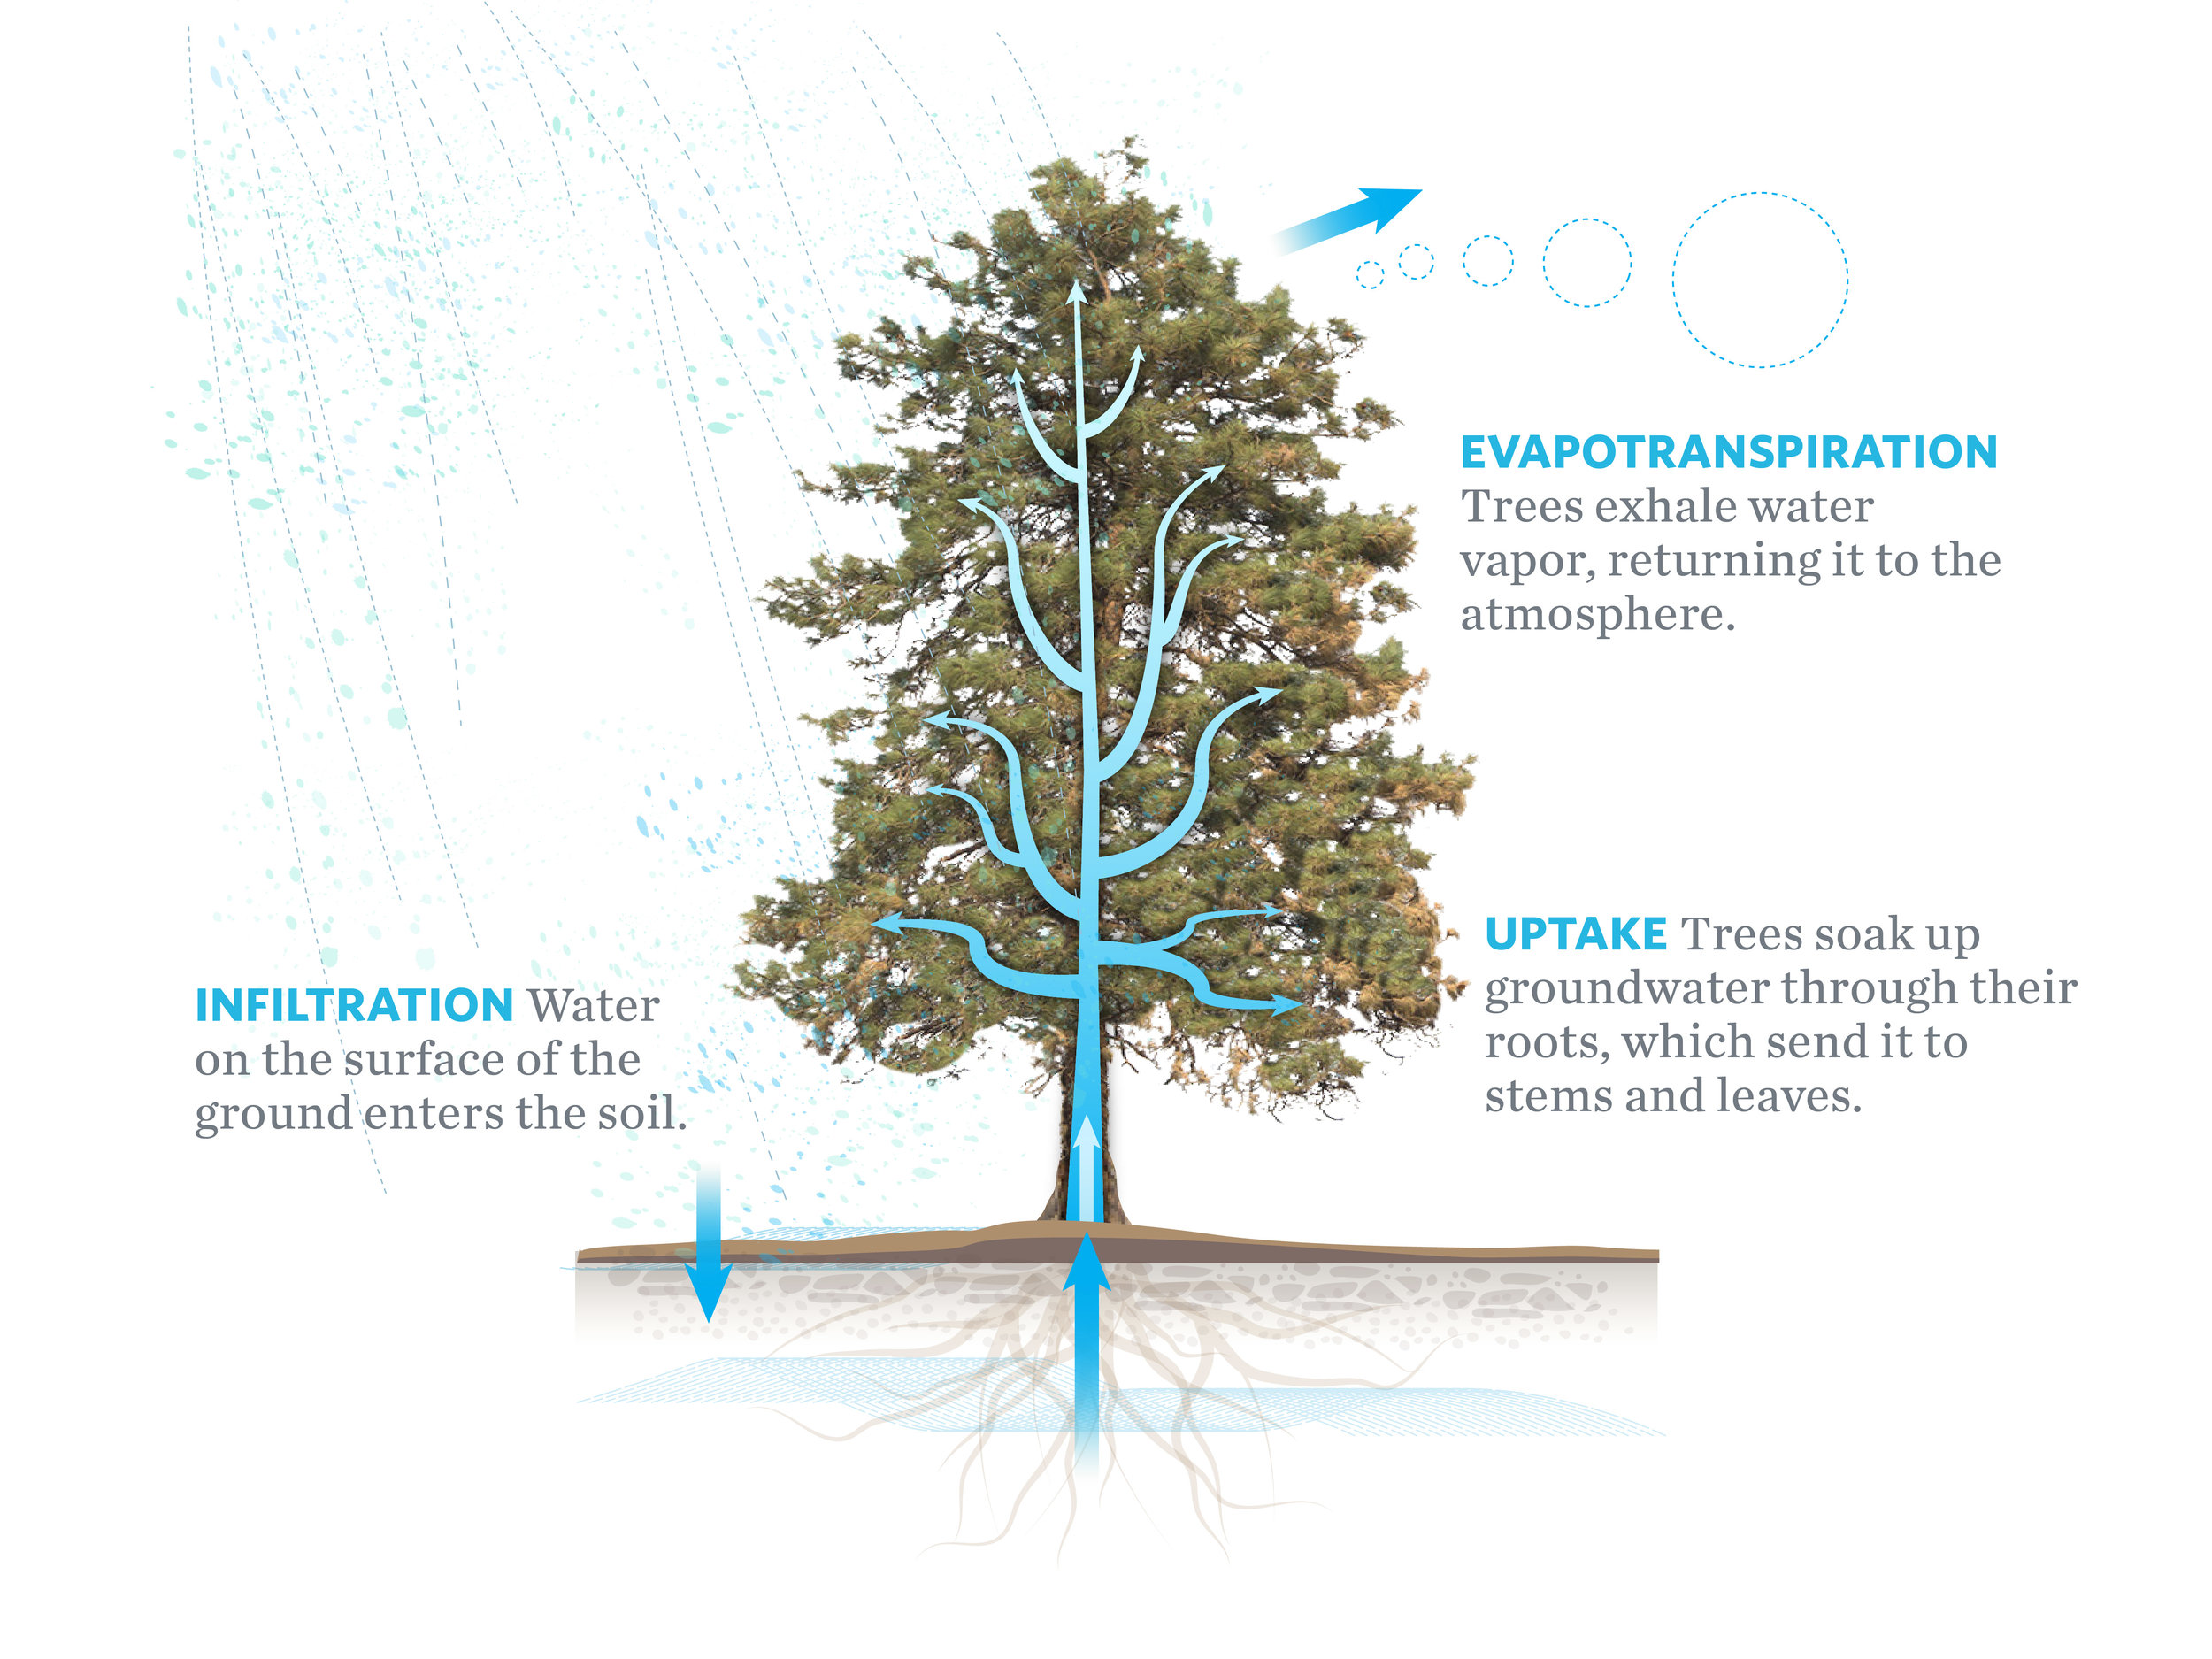 There are several pieces to the hydrologic puzzle of our dry forests in the Eastern Cascades. Trees draw water from the ground but they also transpire it as vapor. Overstocked forests may be a threat to water security as our climate grows hotter and drier.